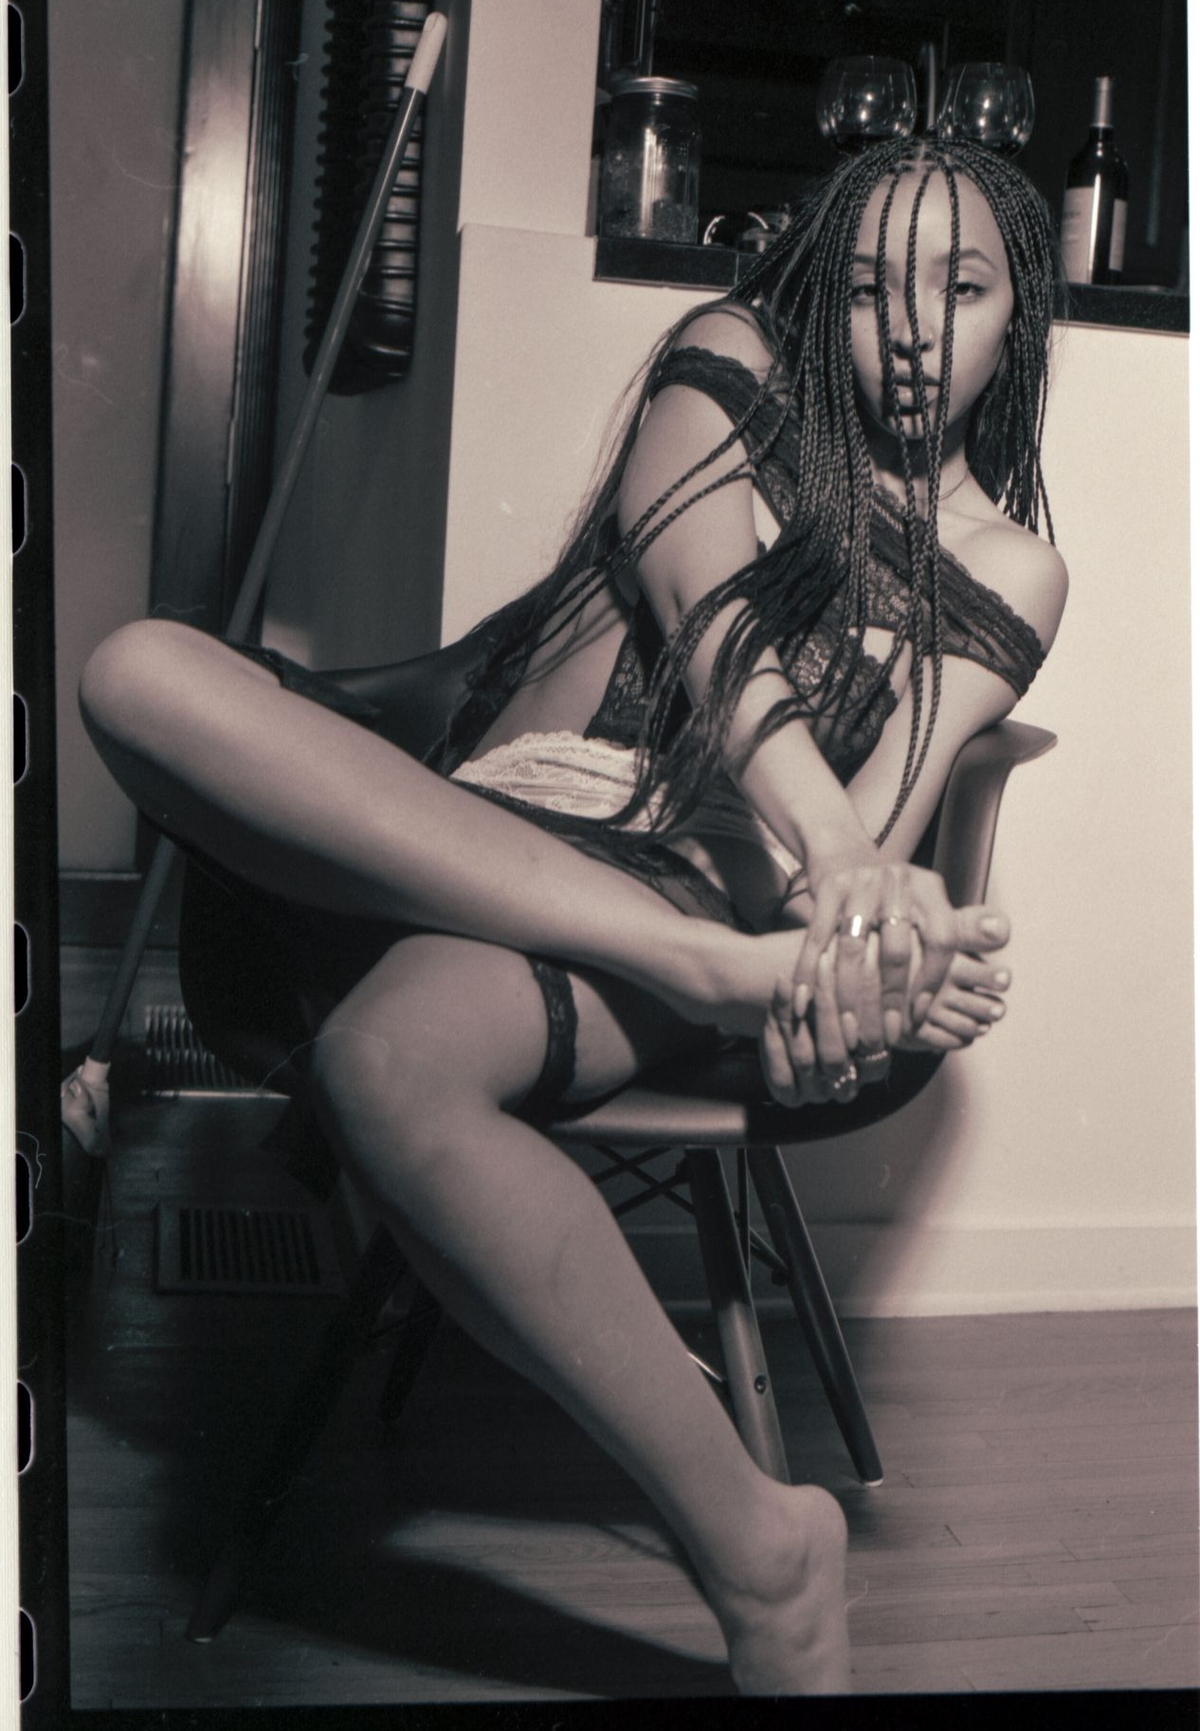 Tinashe posing and showing her ass